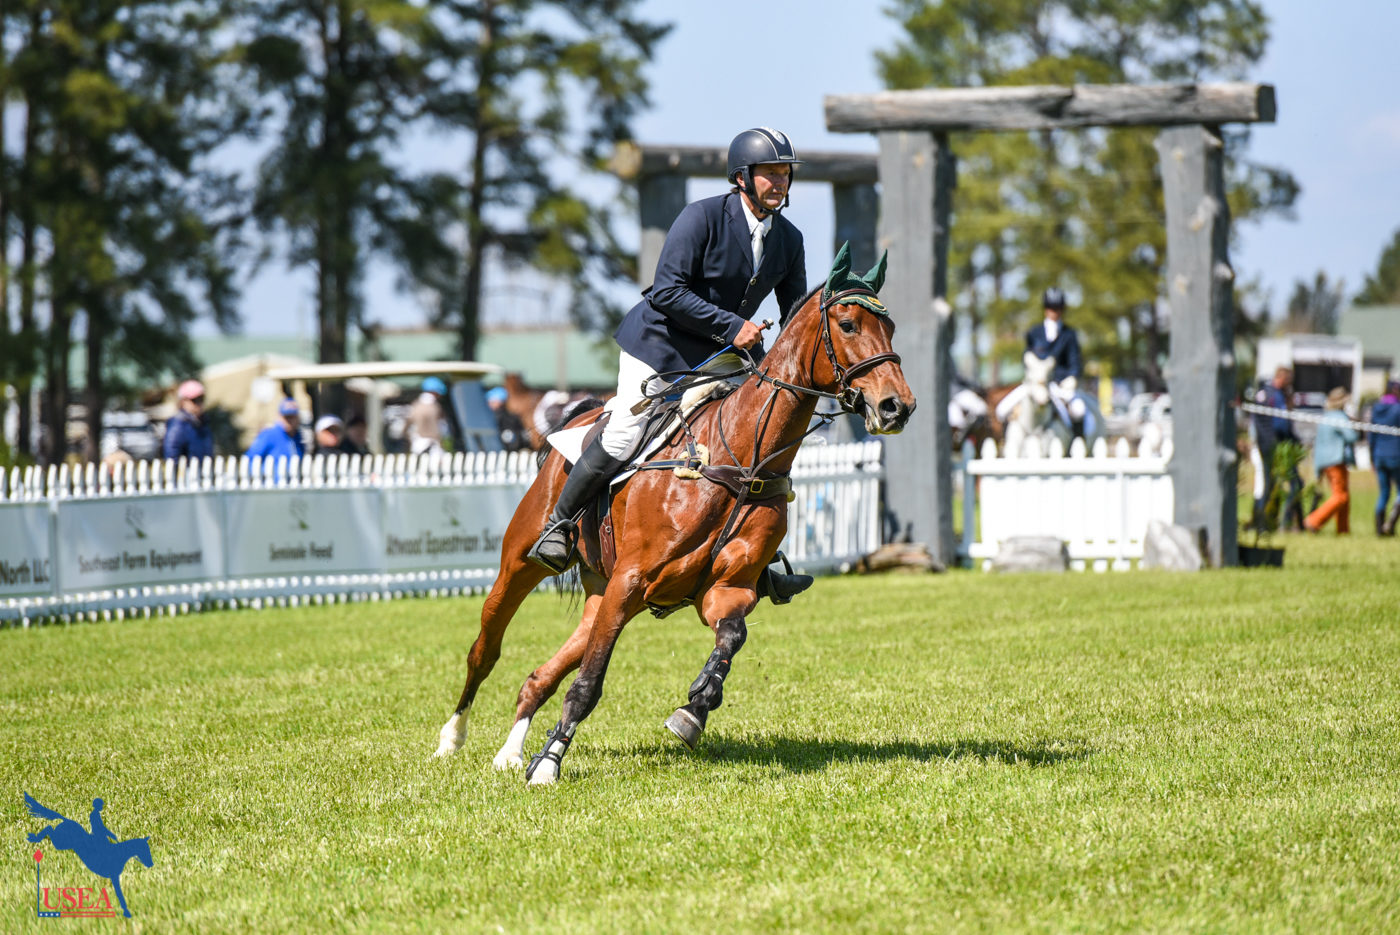 4* - 7thT - Clayton Fredericks and FE Ophelia